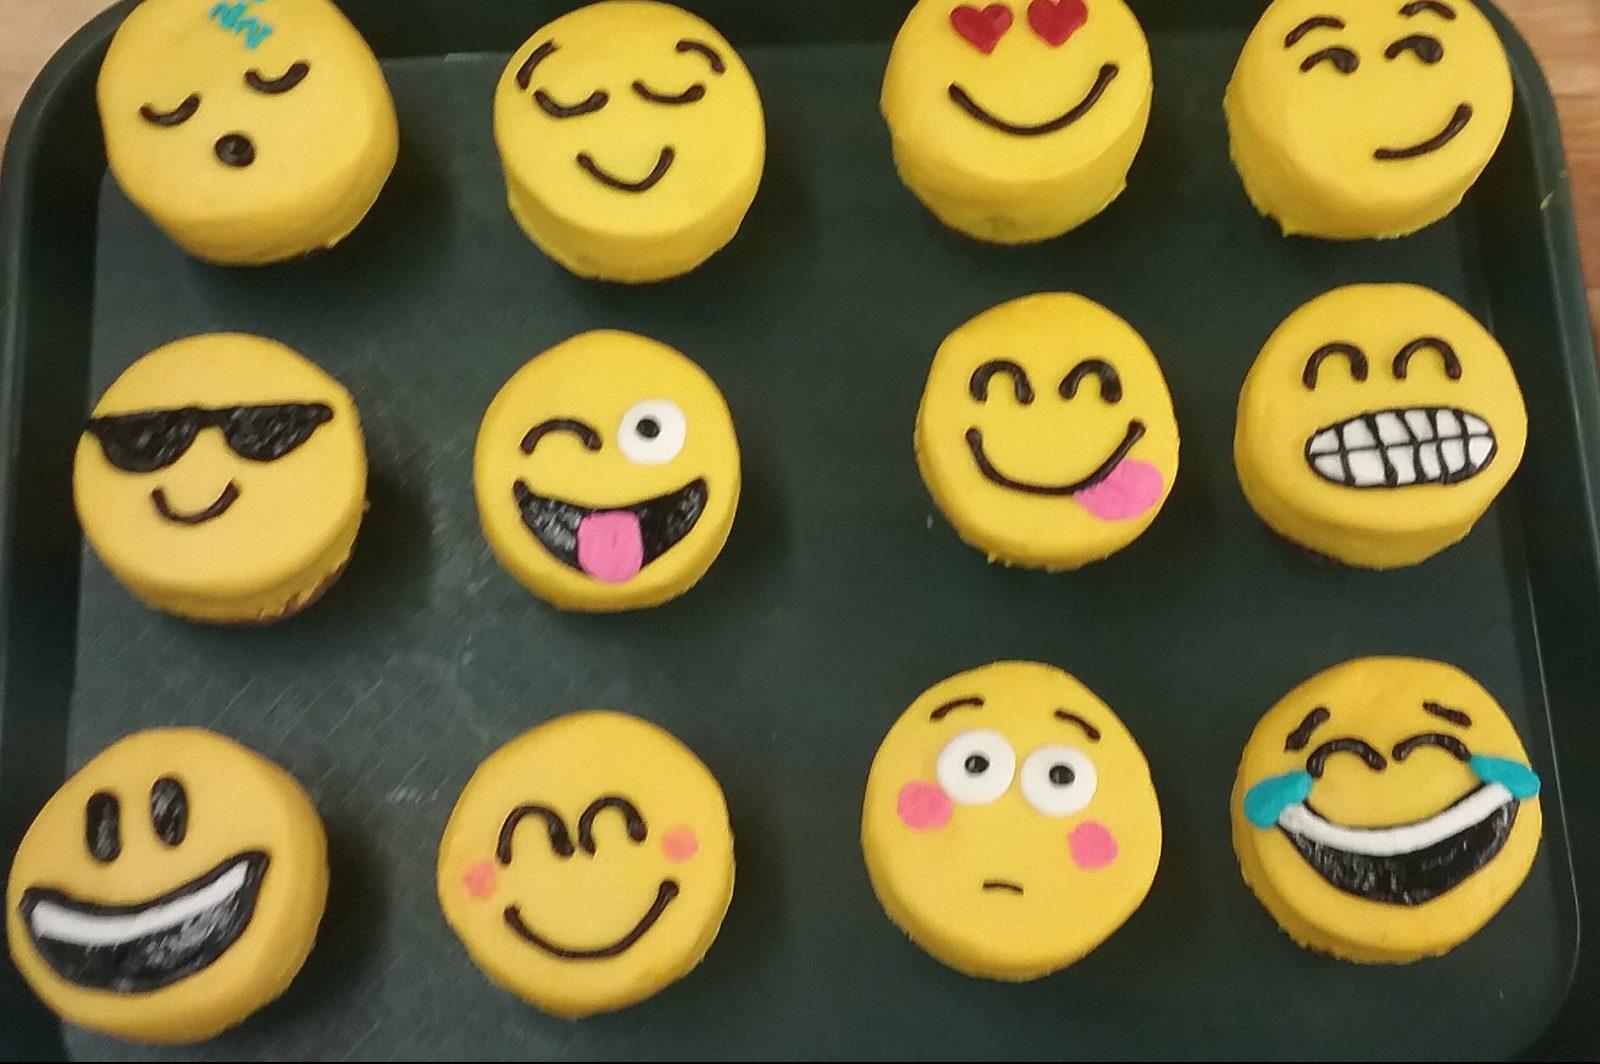 Emojis showing range of emotions: happy, sad, angry etc.